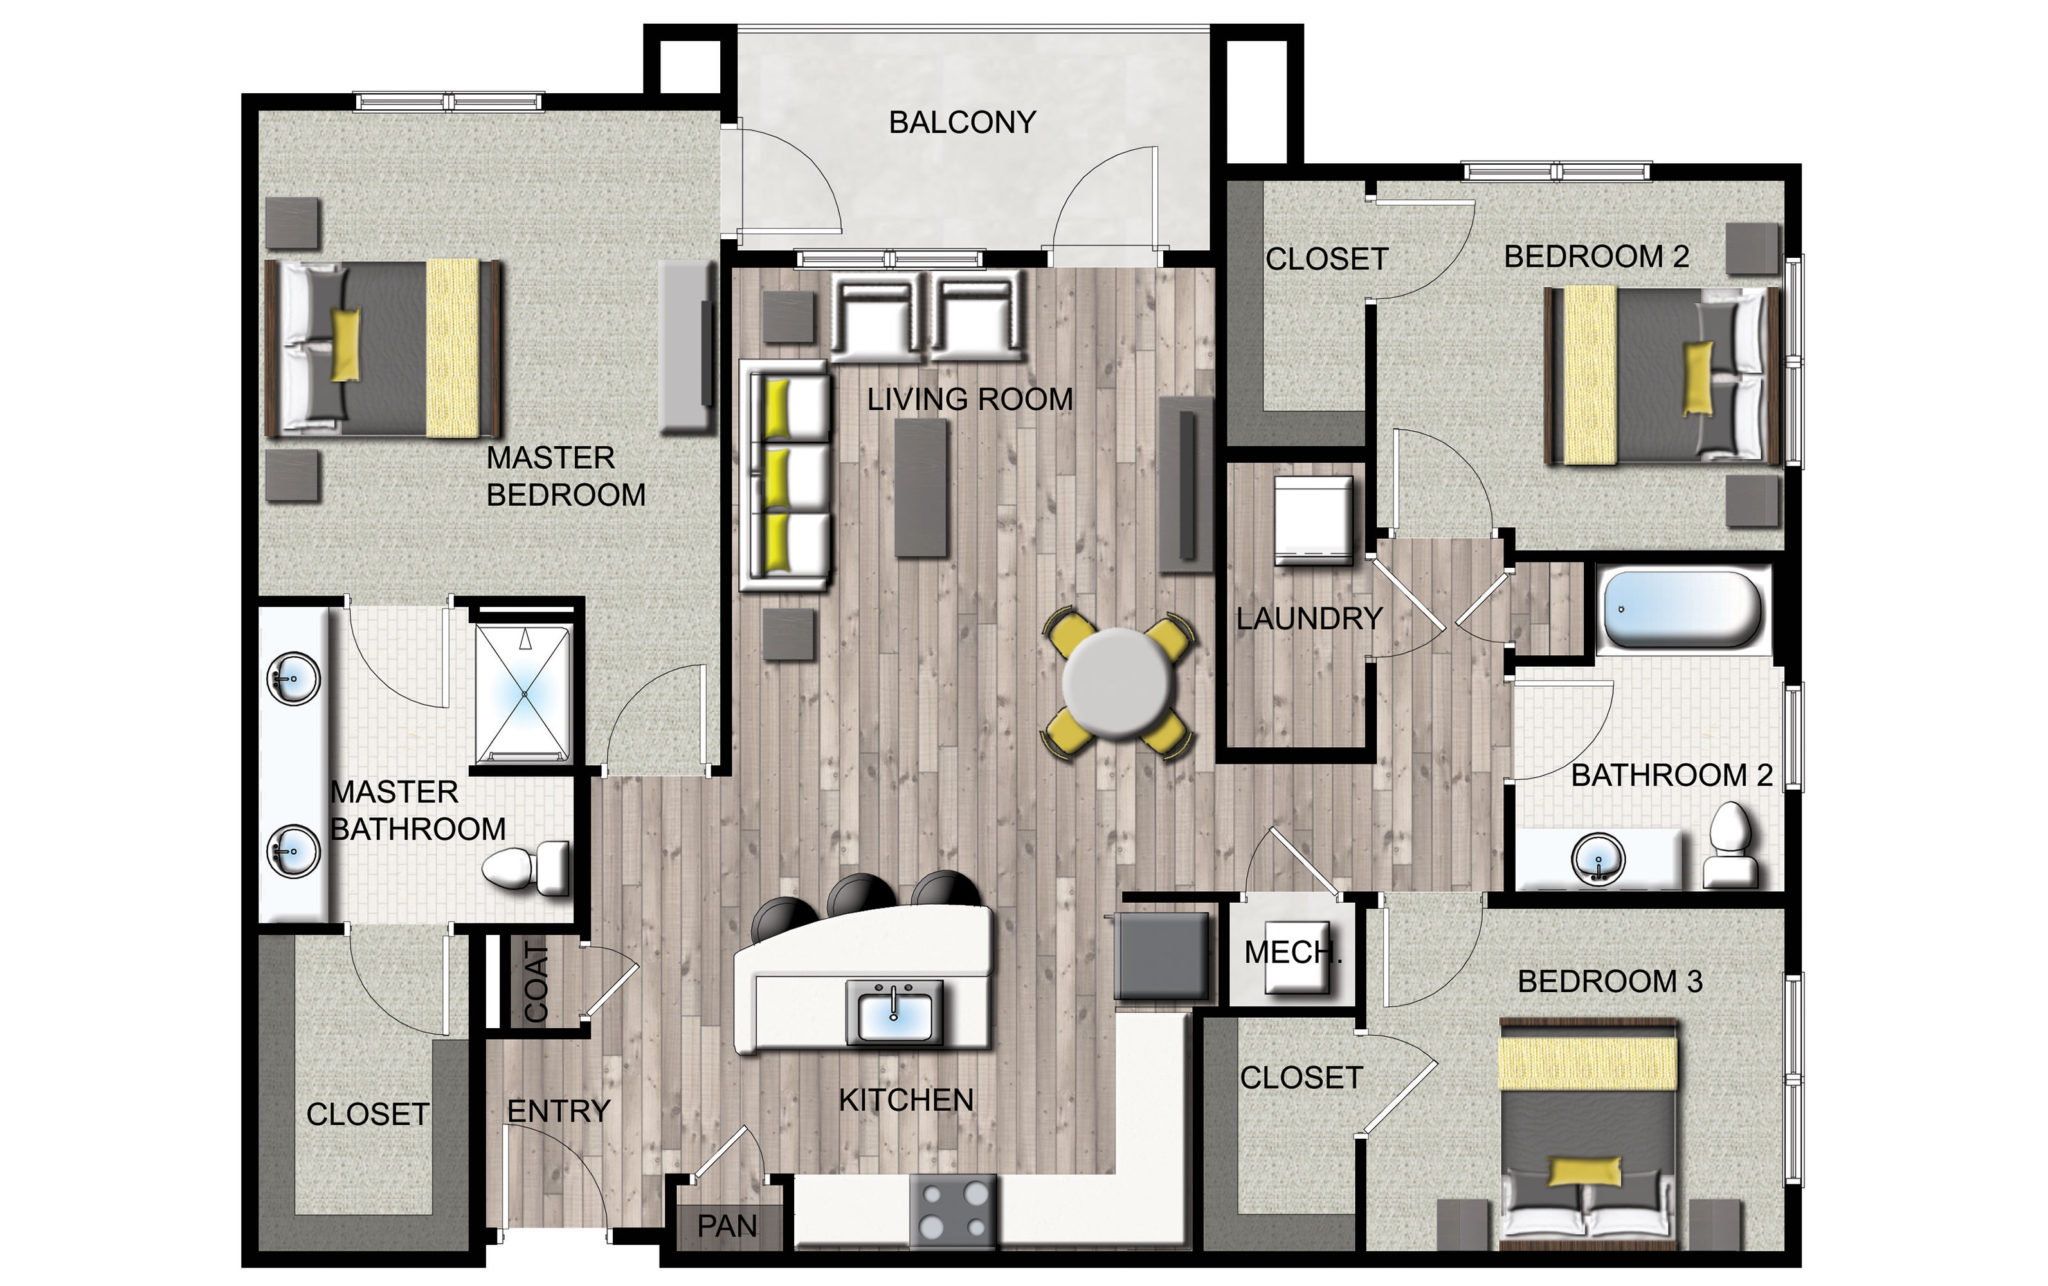 See the apartment floor plans for Studer's downtown